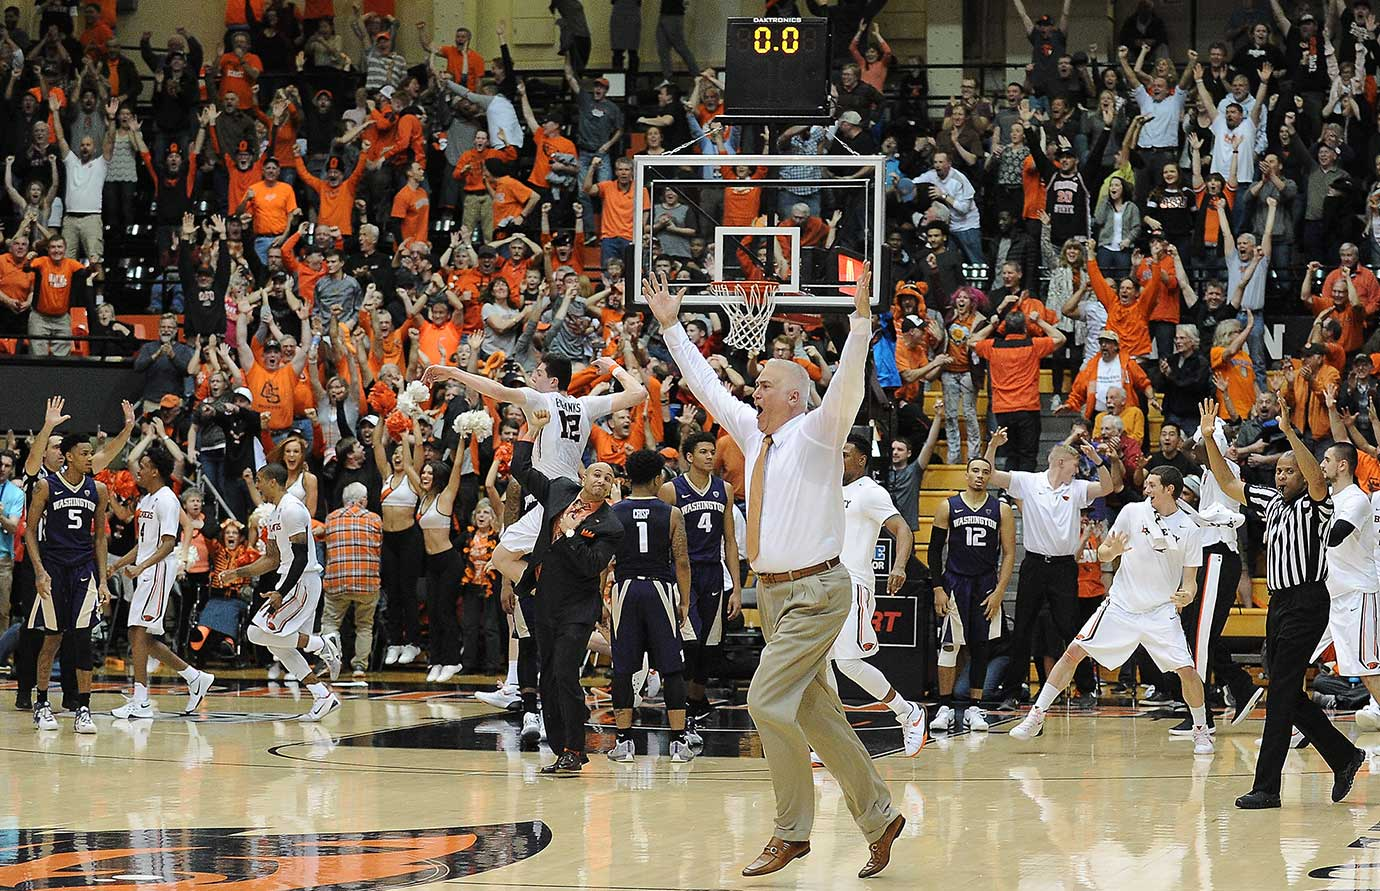 Oregon State coach Wayne Tinkle celebrates a last-second 82-81 win over the Washington Huskies.